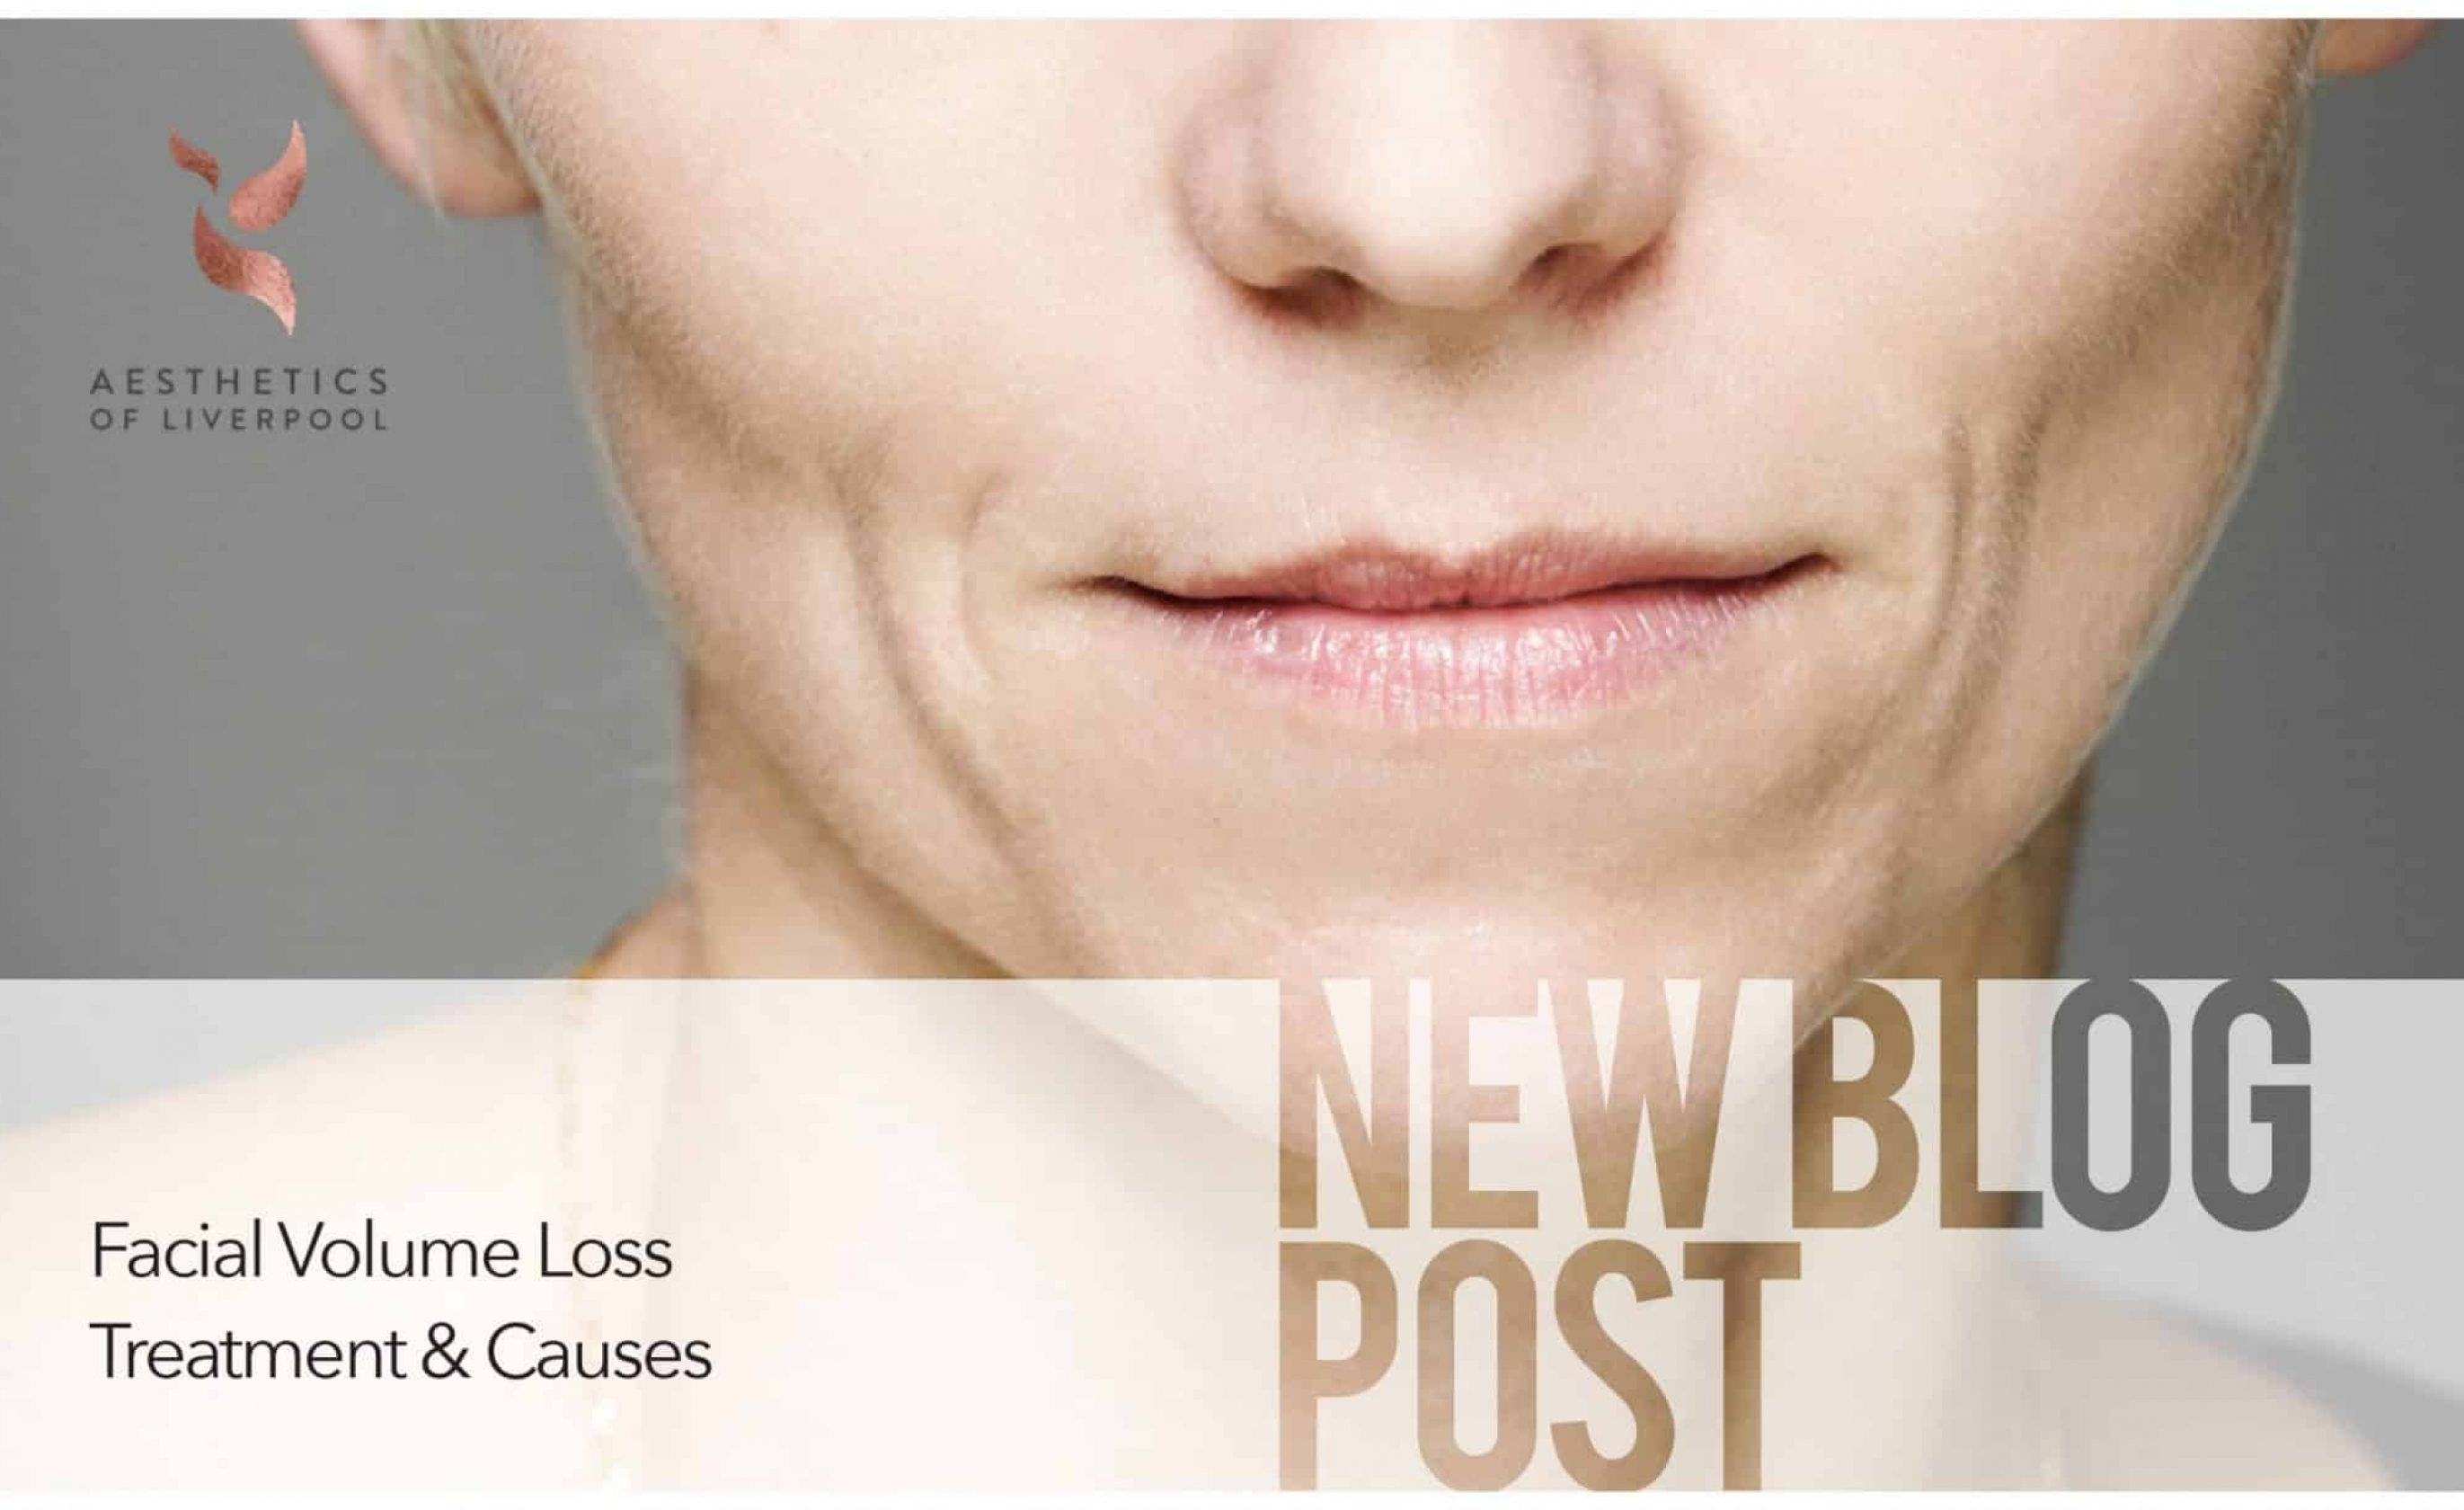 Facial Volume Loss Treatments and Causes